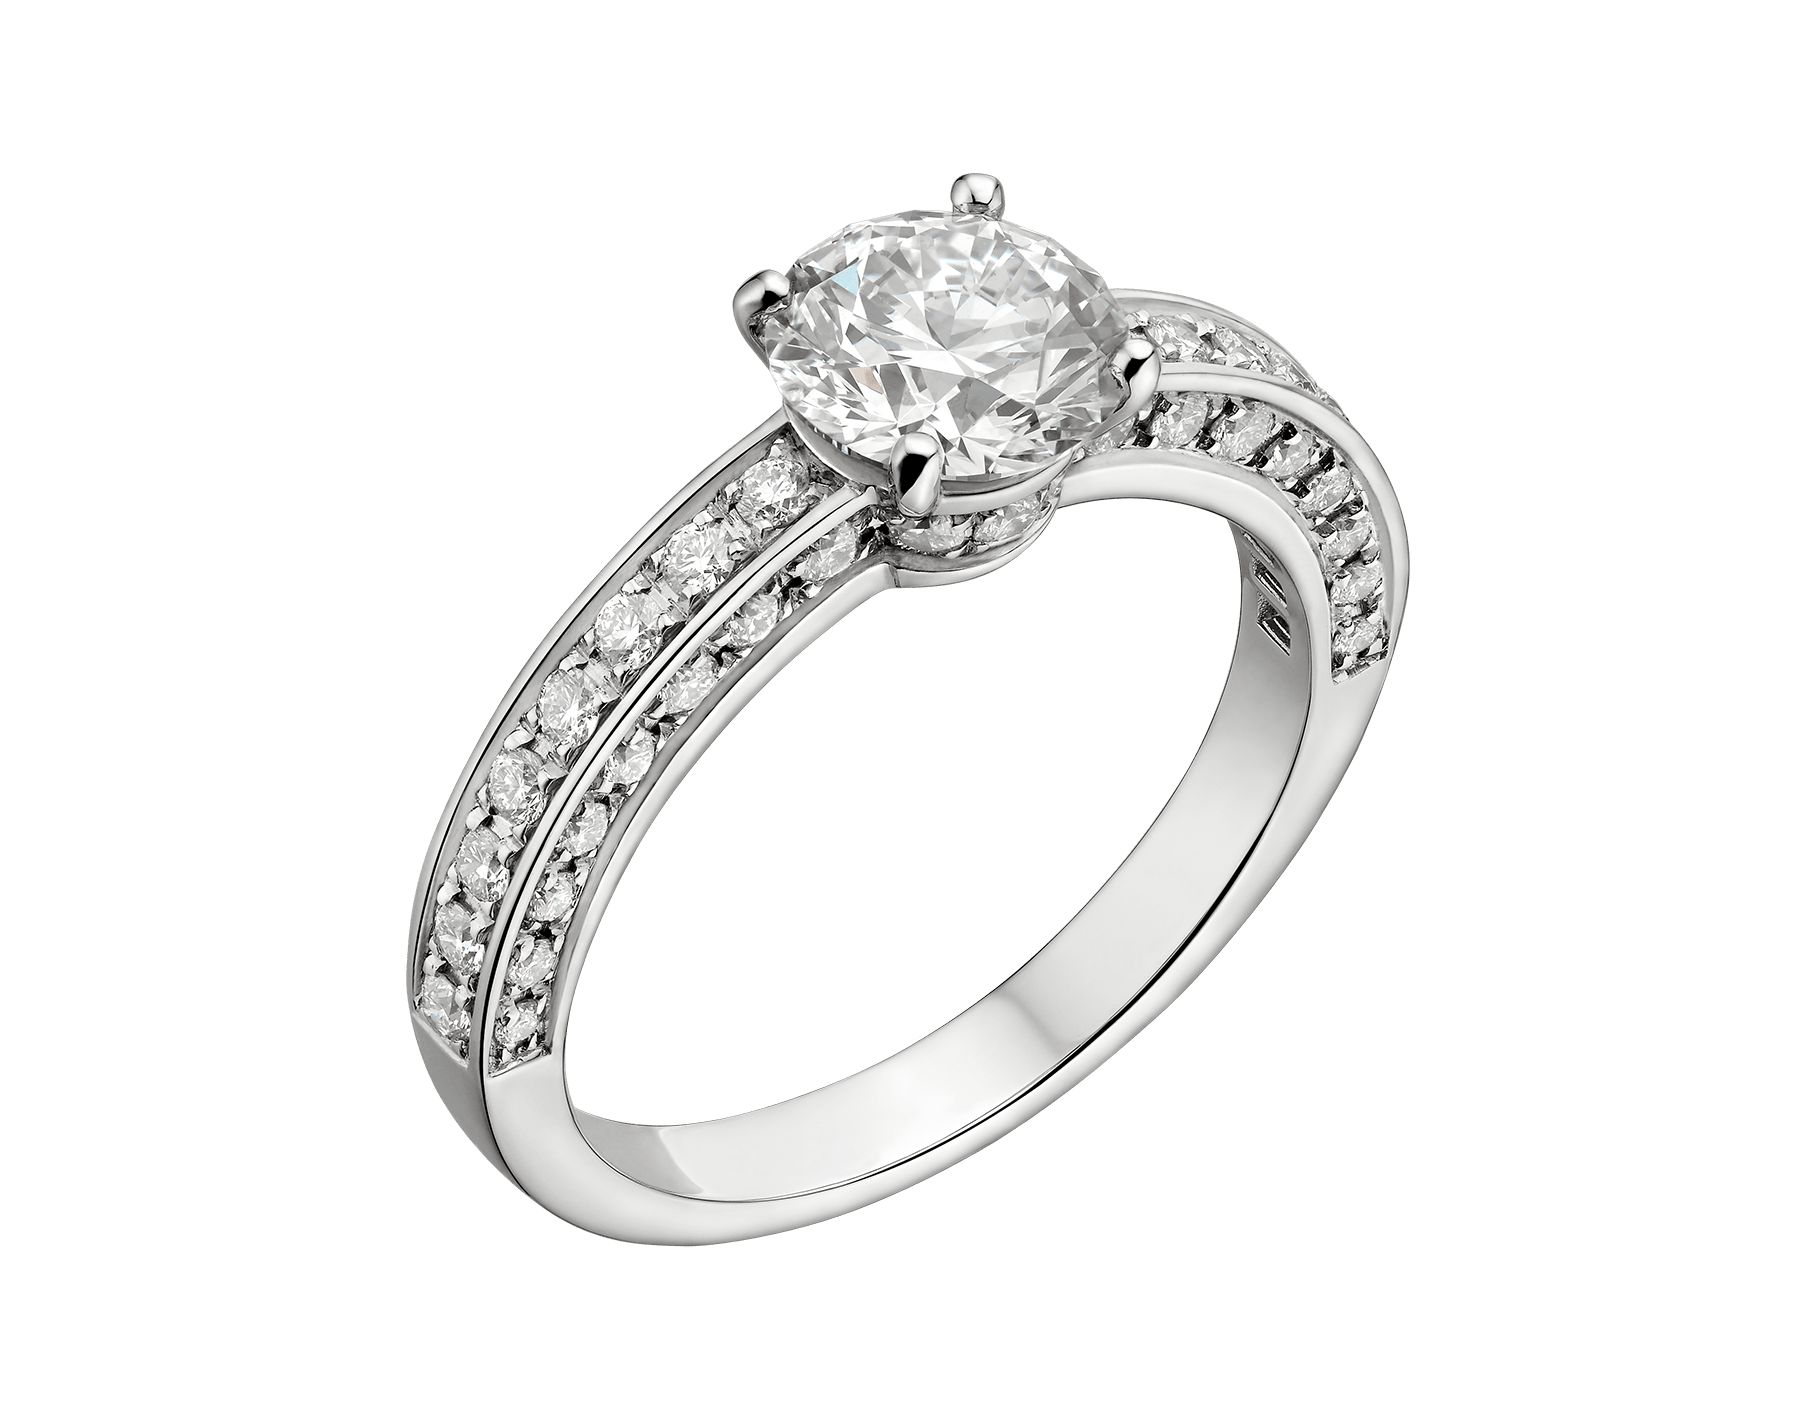 Dedicata a Venezia: 1503 solitaire ring in platinum with a round brilliant-cut diamond and pavé diamonds. Available from 0.30 ct. Named after the year in which the first engagement ring was offered in Venice. 344067 image 1